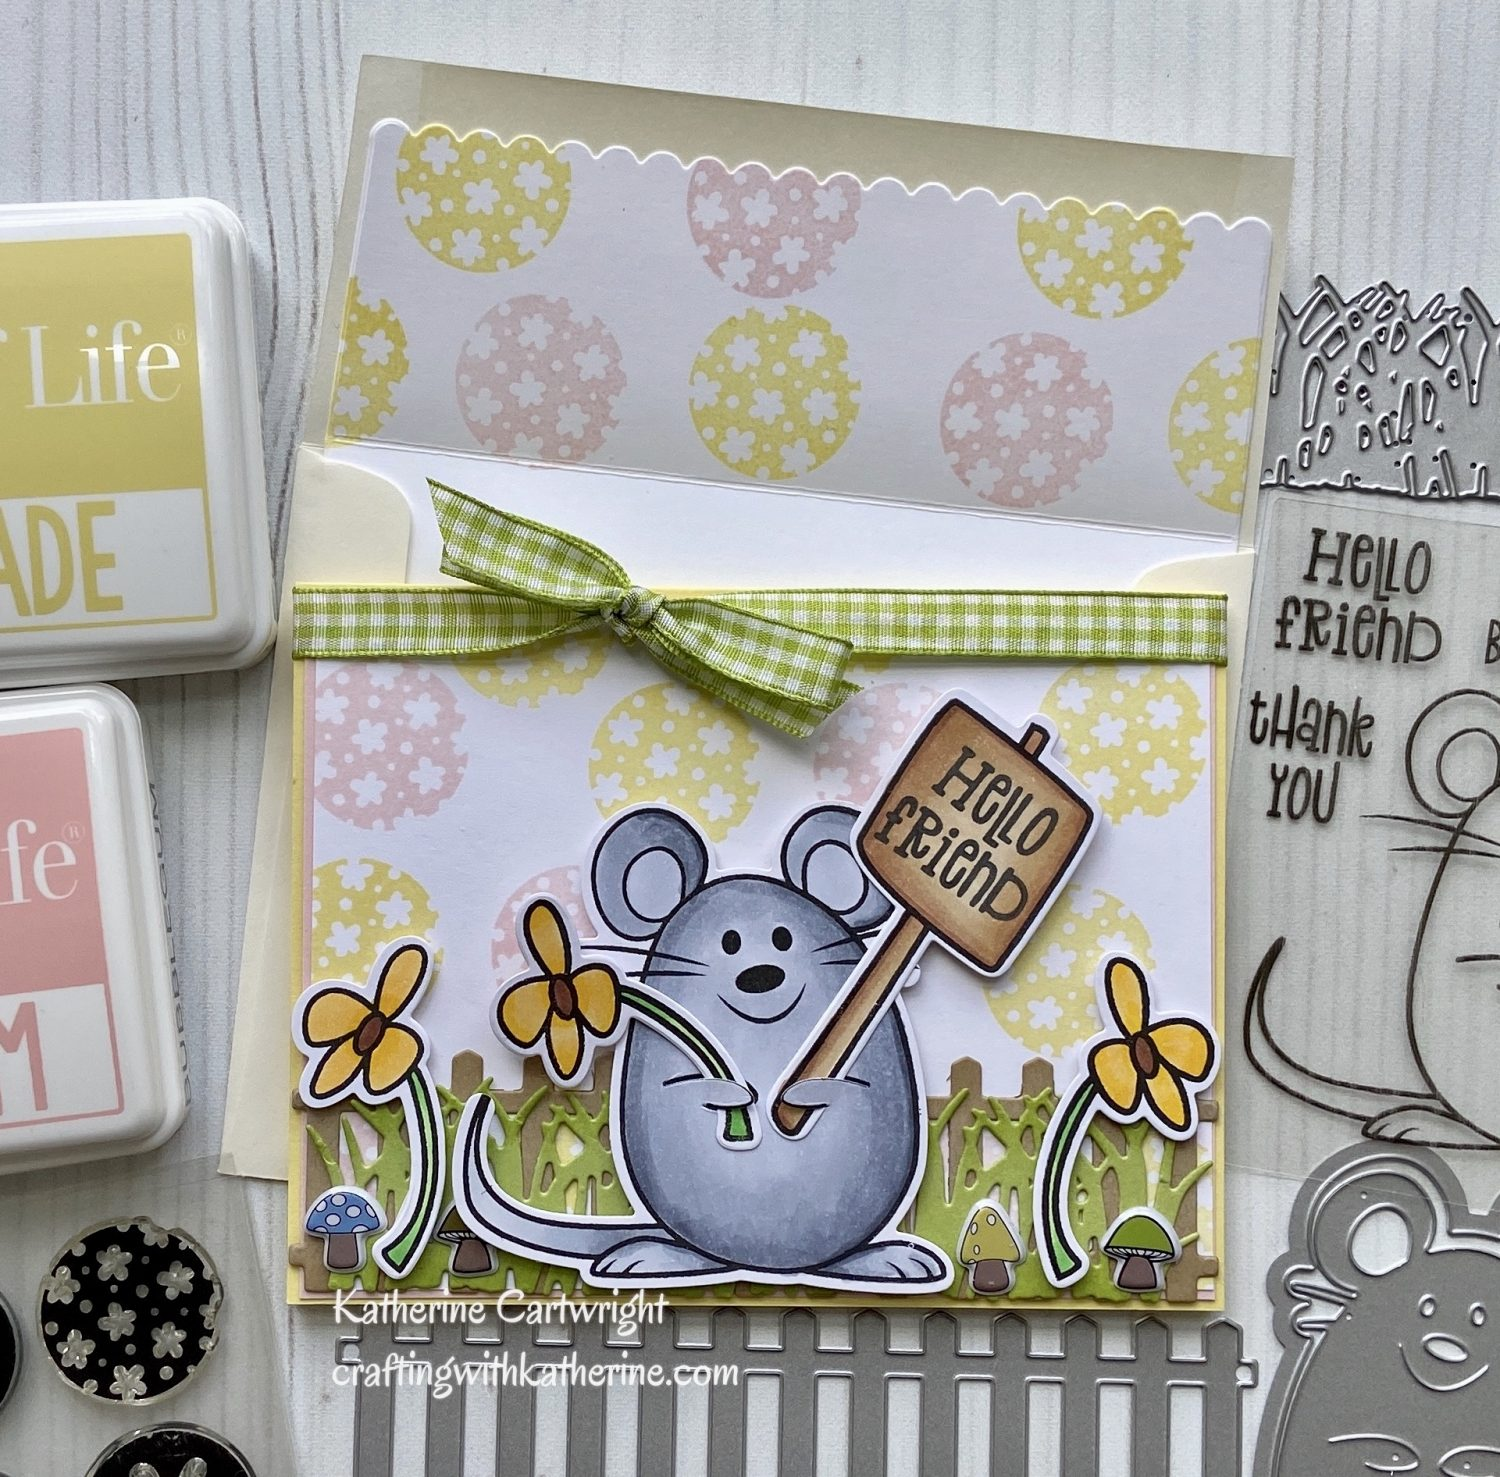 You are currently viewing Handmade Card: Sign4Mouse from The Stamps of Life